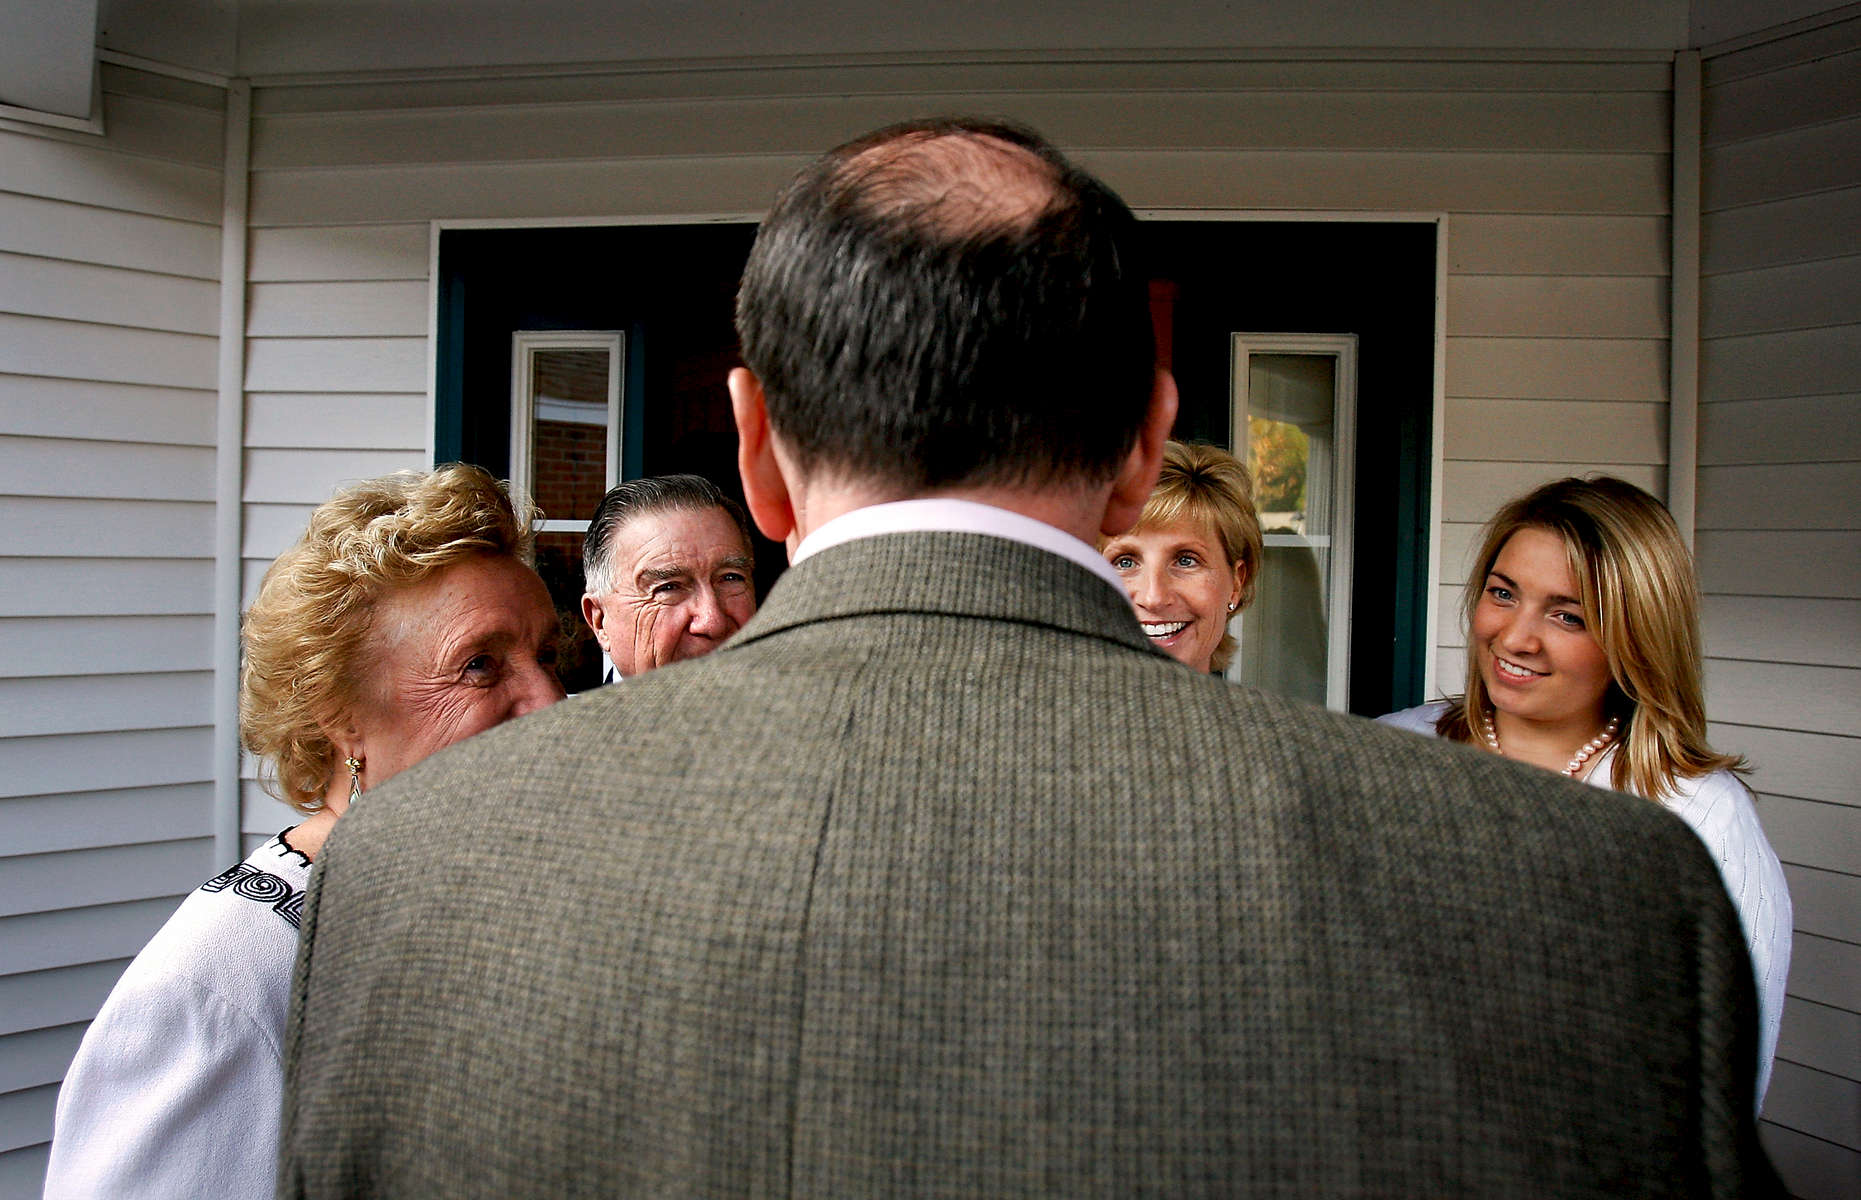 Before a house party in Bedford, Huckabee talks with hosts Estella and Bob Hughes, their daughter, Pamela Patenaude, and granddaughter Caitlin Patenaude. Presidential candidate Governor Mike Huckabee campaigns in New Hampshire on November 10, 2007.